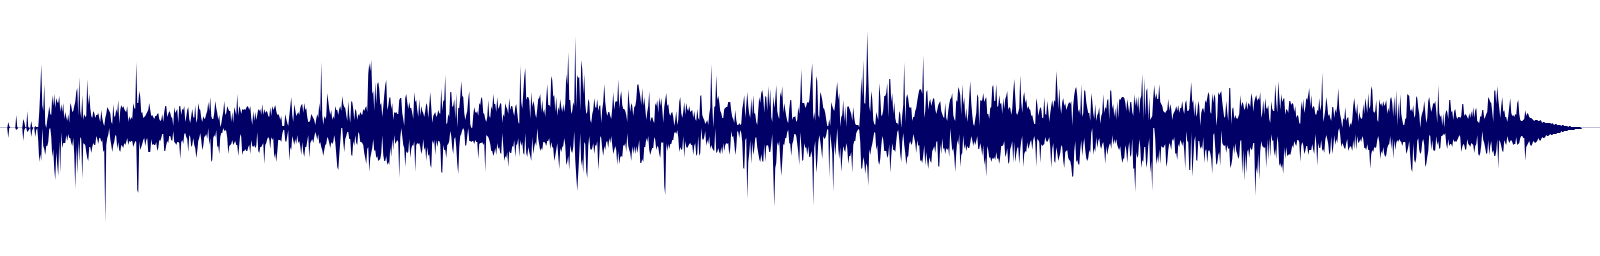 waveform of track #129863